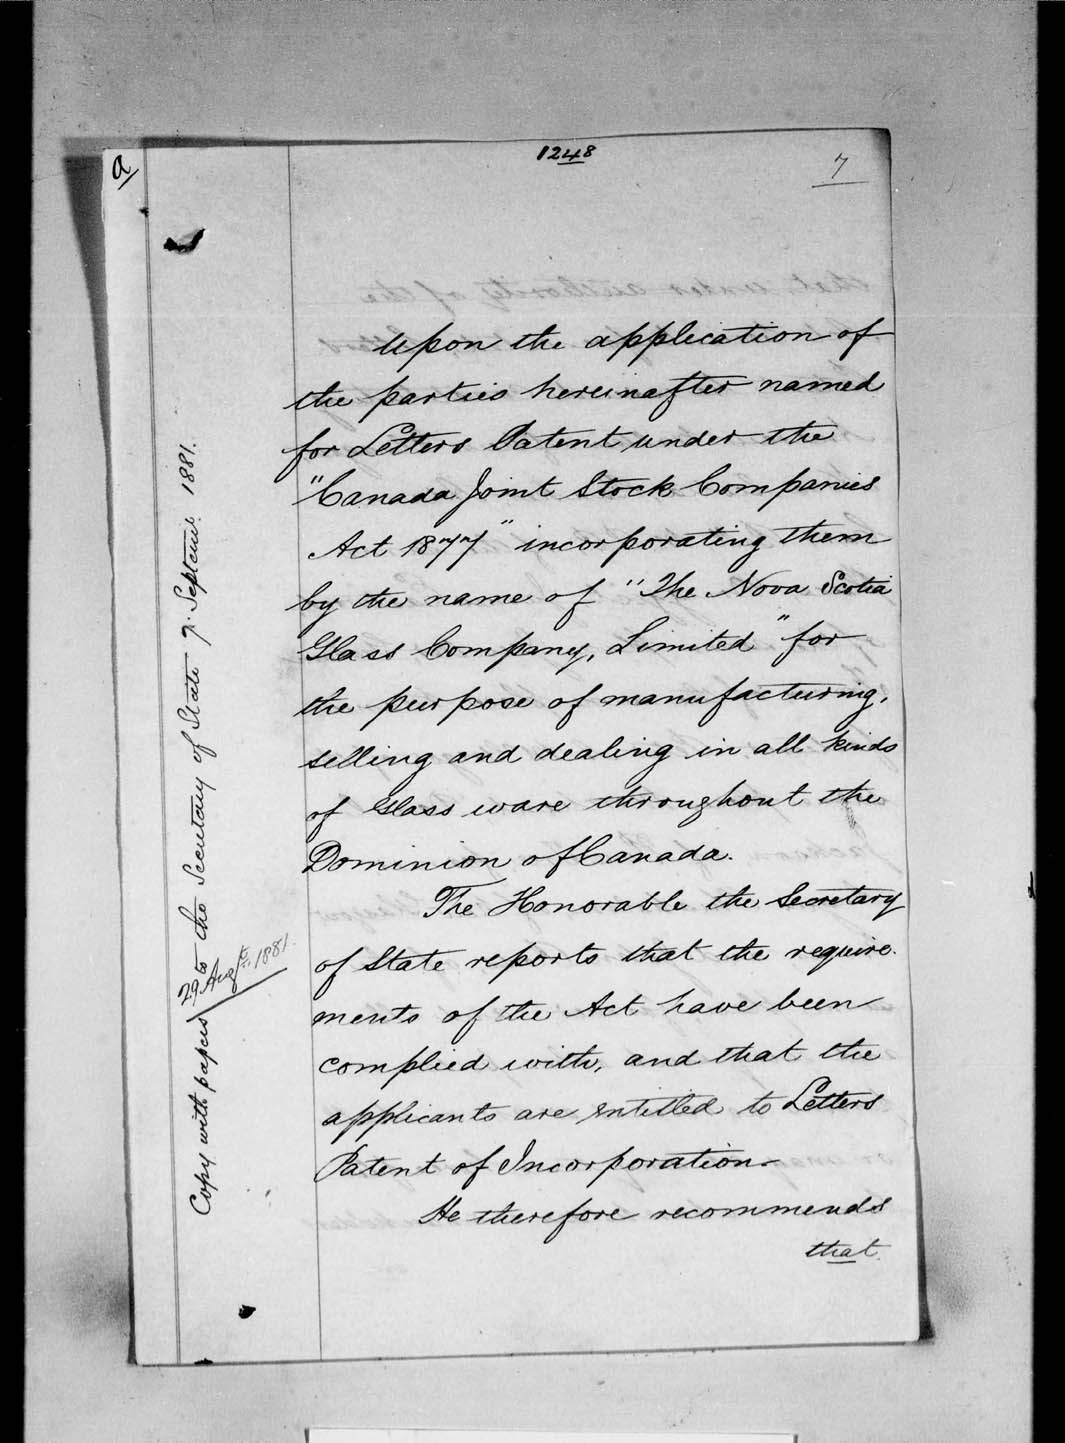 Nova scotia history index subject incorporation of the nova scotia glass company limited new glasgow nova scotia for the purpose of manufacturing selling and dealing in all aiddatafo Gallery